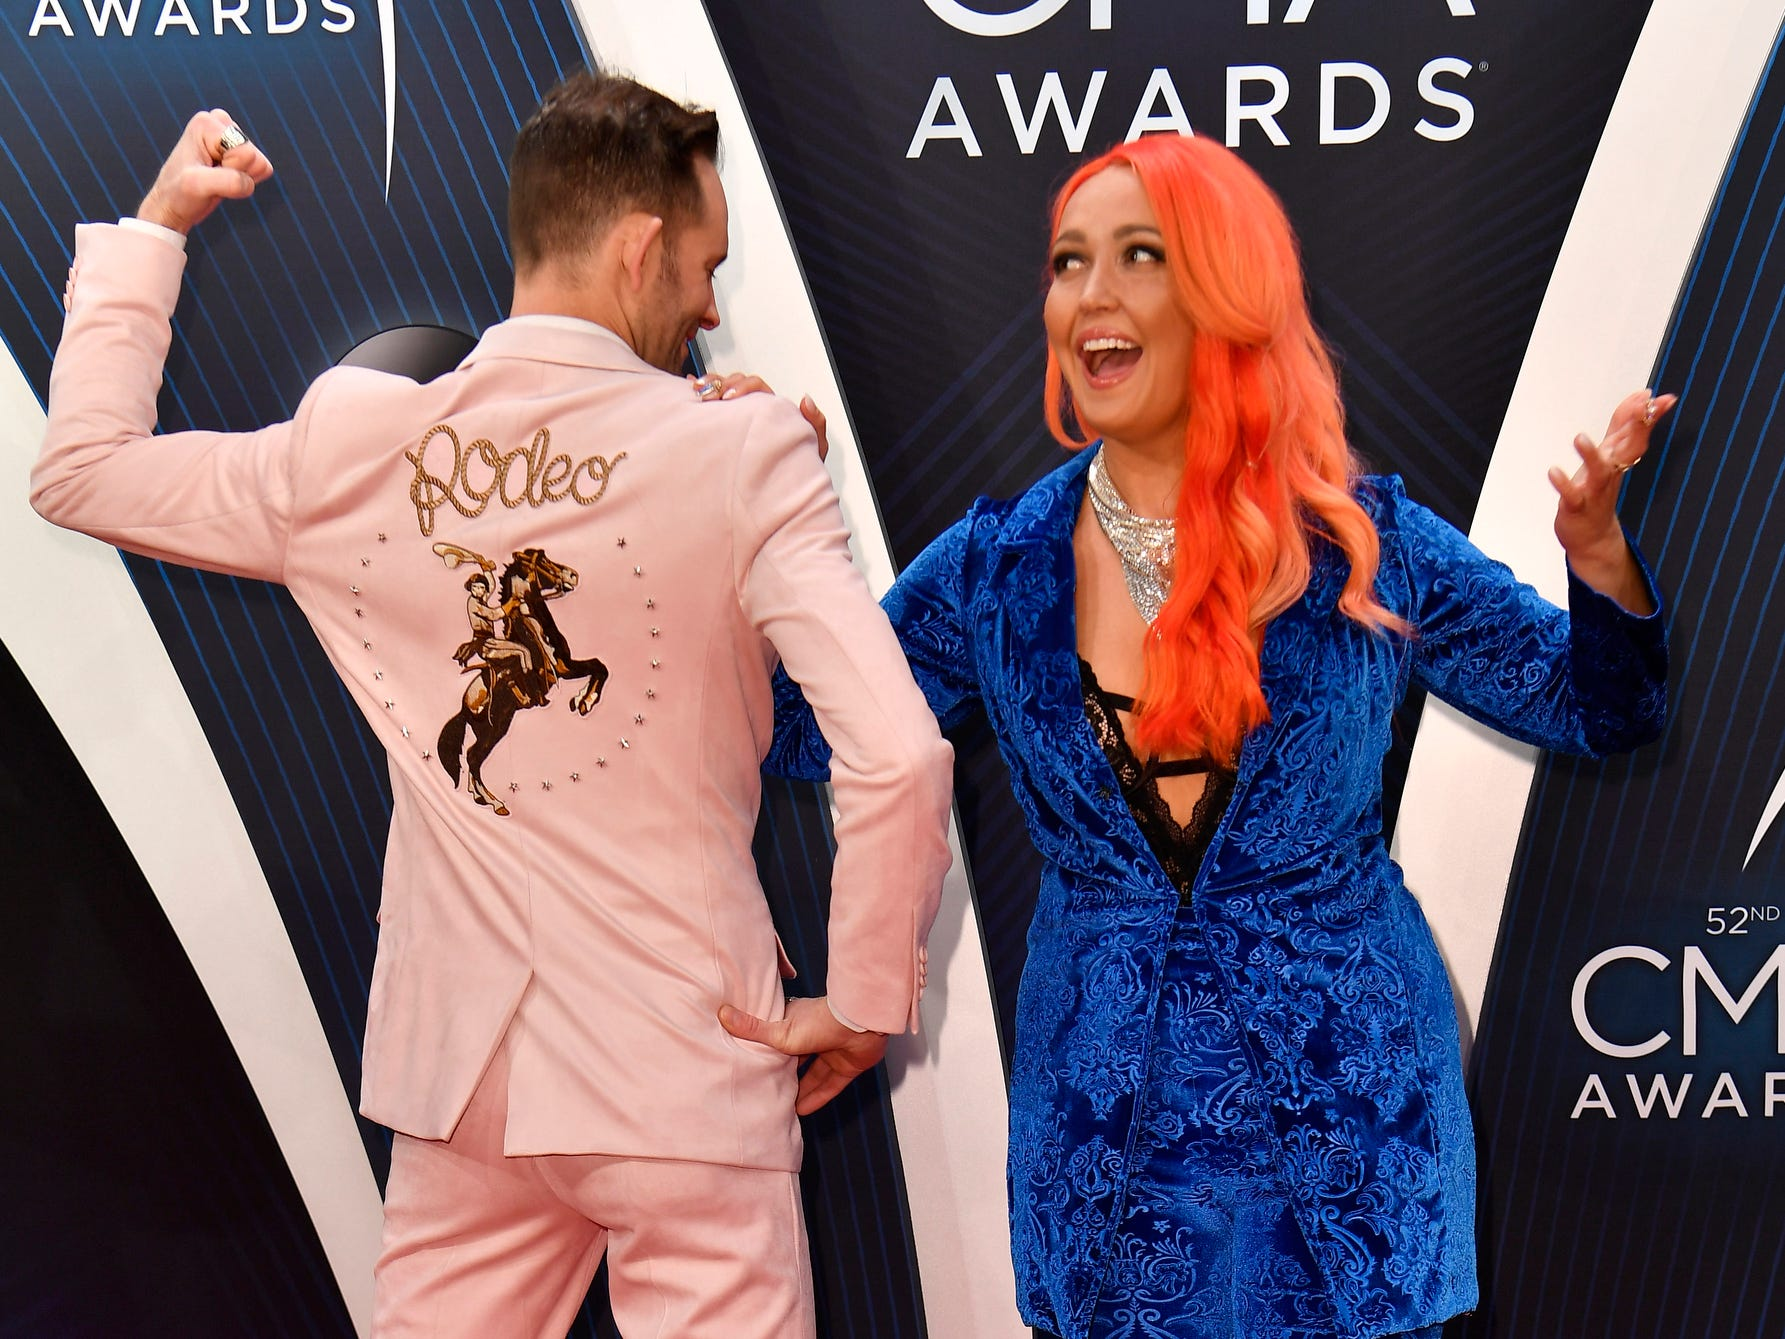 Meghan Linsey clowns around on the red carpet before the 52nd Annual CMA Awards, on Nov. 14, 2018, in Nashville.